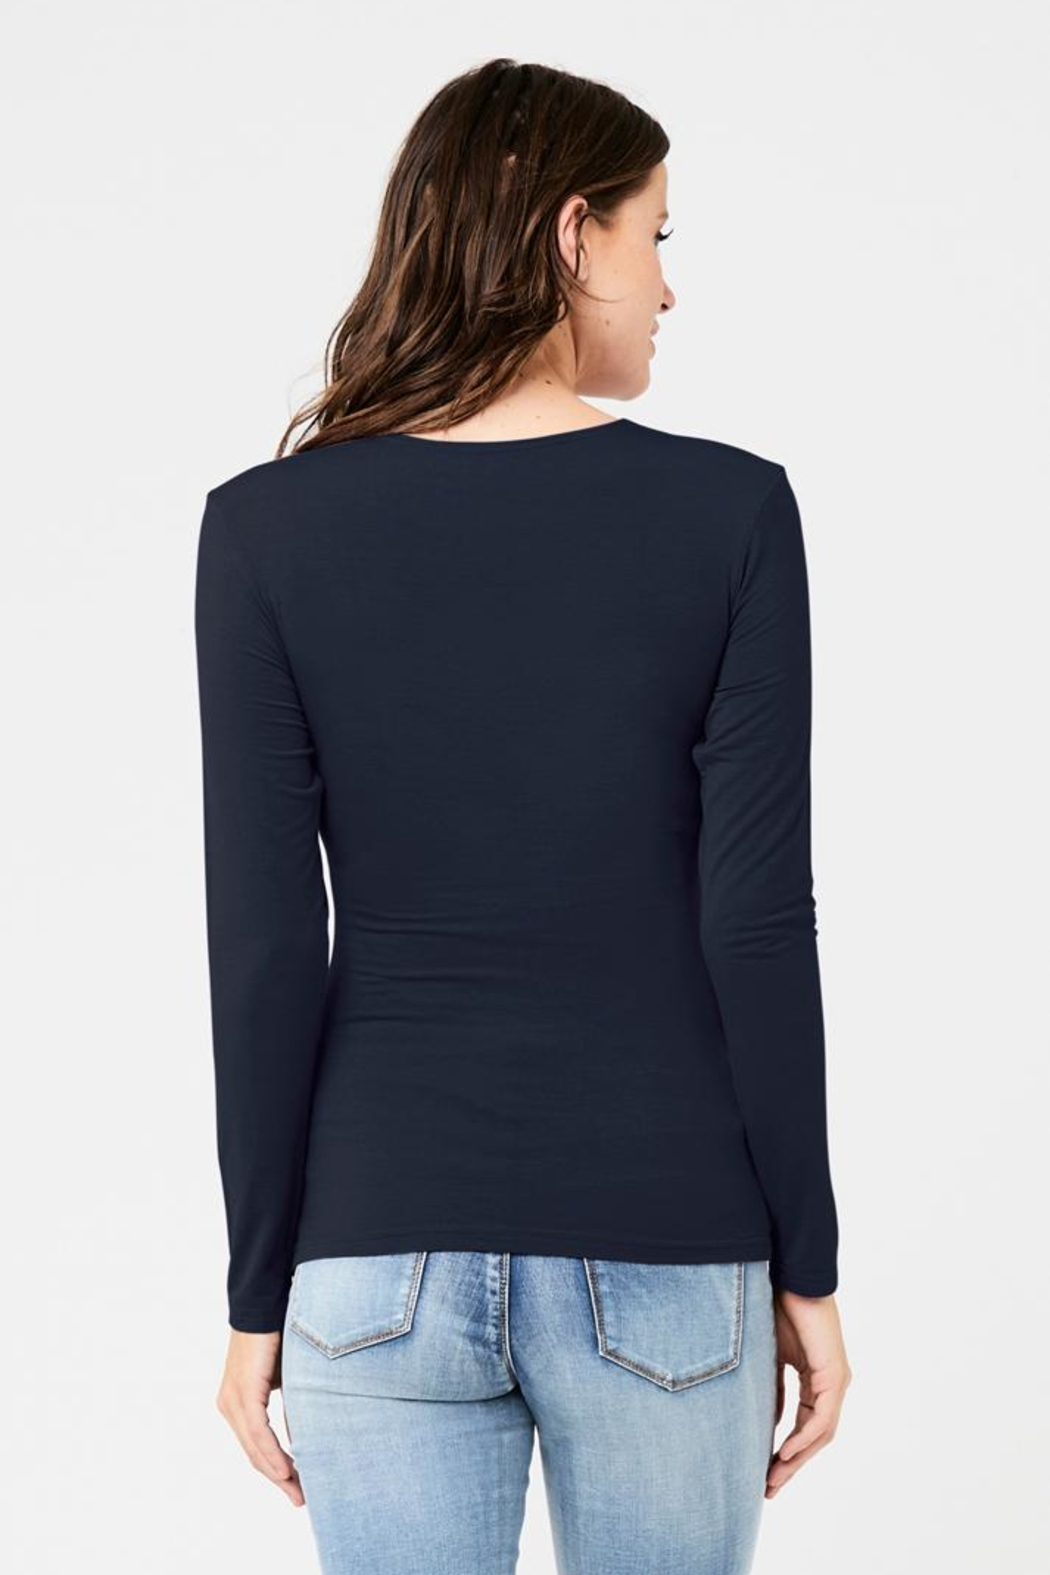 Ripe Maternity Embrace Top - Navy - Side Cropped Image